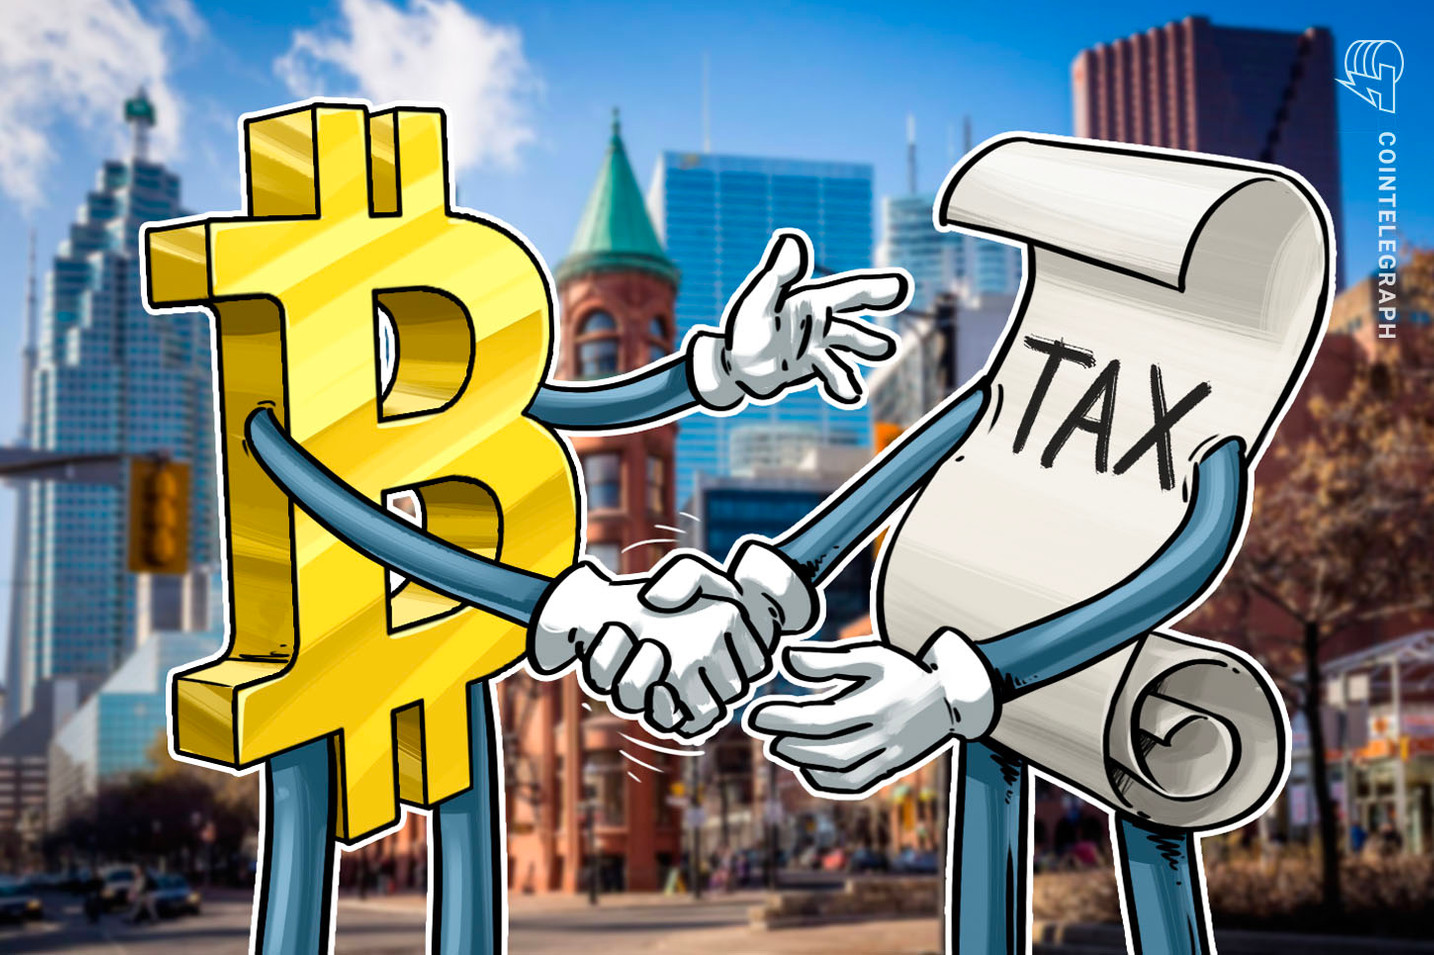 Canada: Ontario Town Approves Pilot Program for Paying Property Taxes With Bitcoin